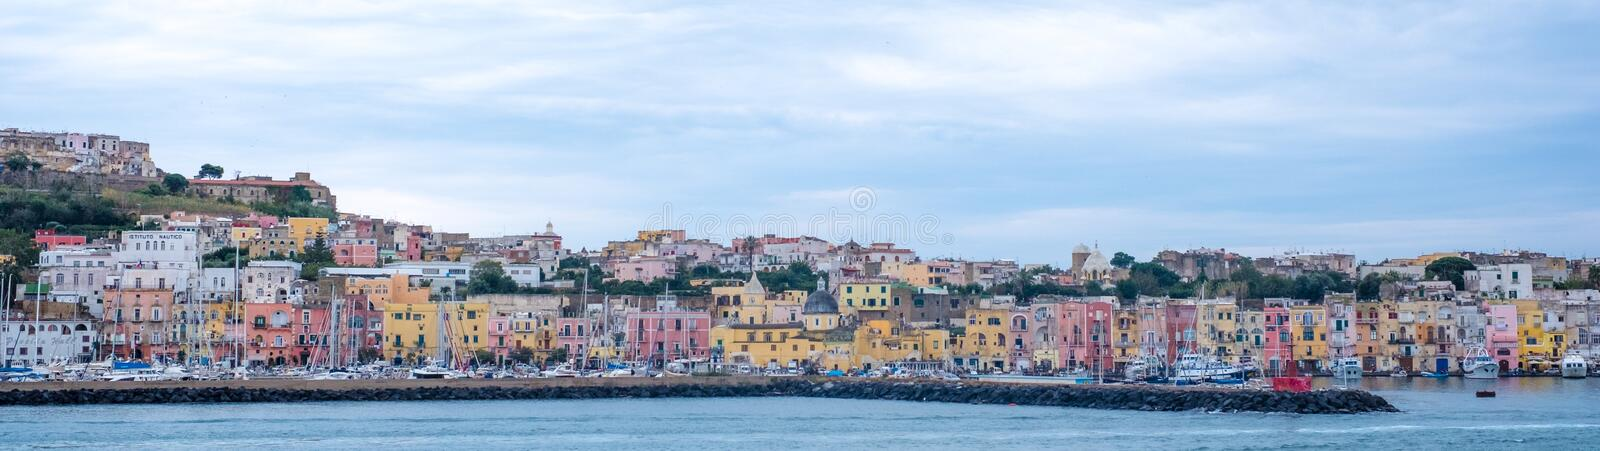 Panoramic photo of the harbour front with pastel coloured houses on the island of Procida Italy, photographed from the water. royalty free stock image